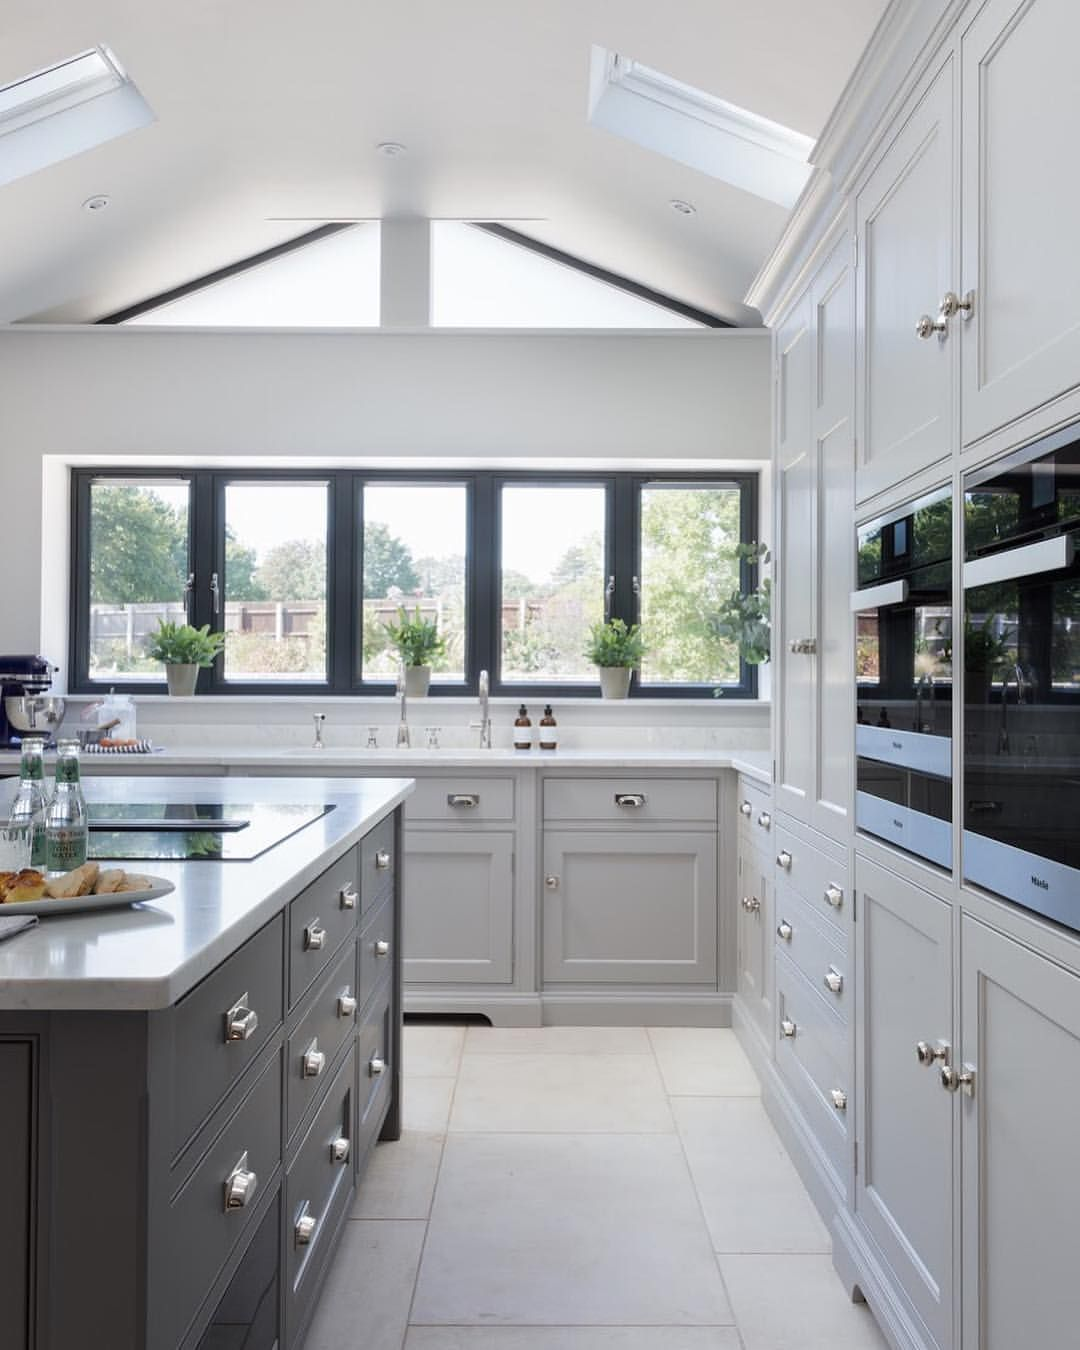 We Love This View Towards The Sink Run In This Modern